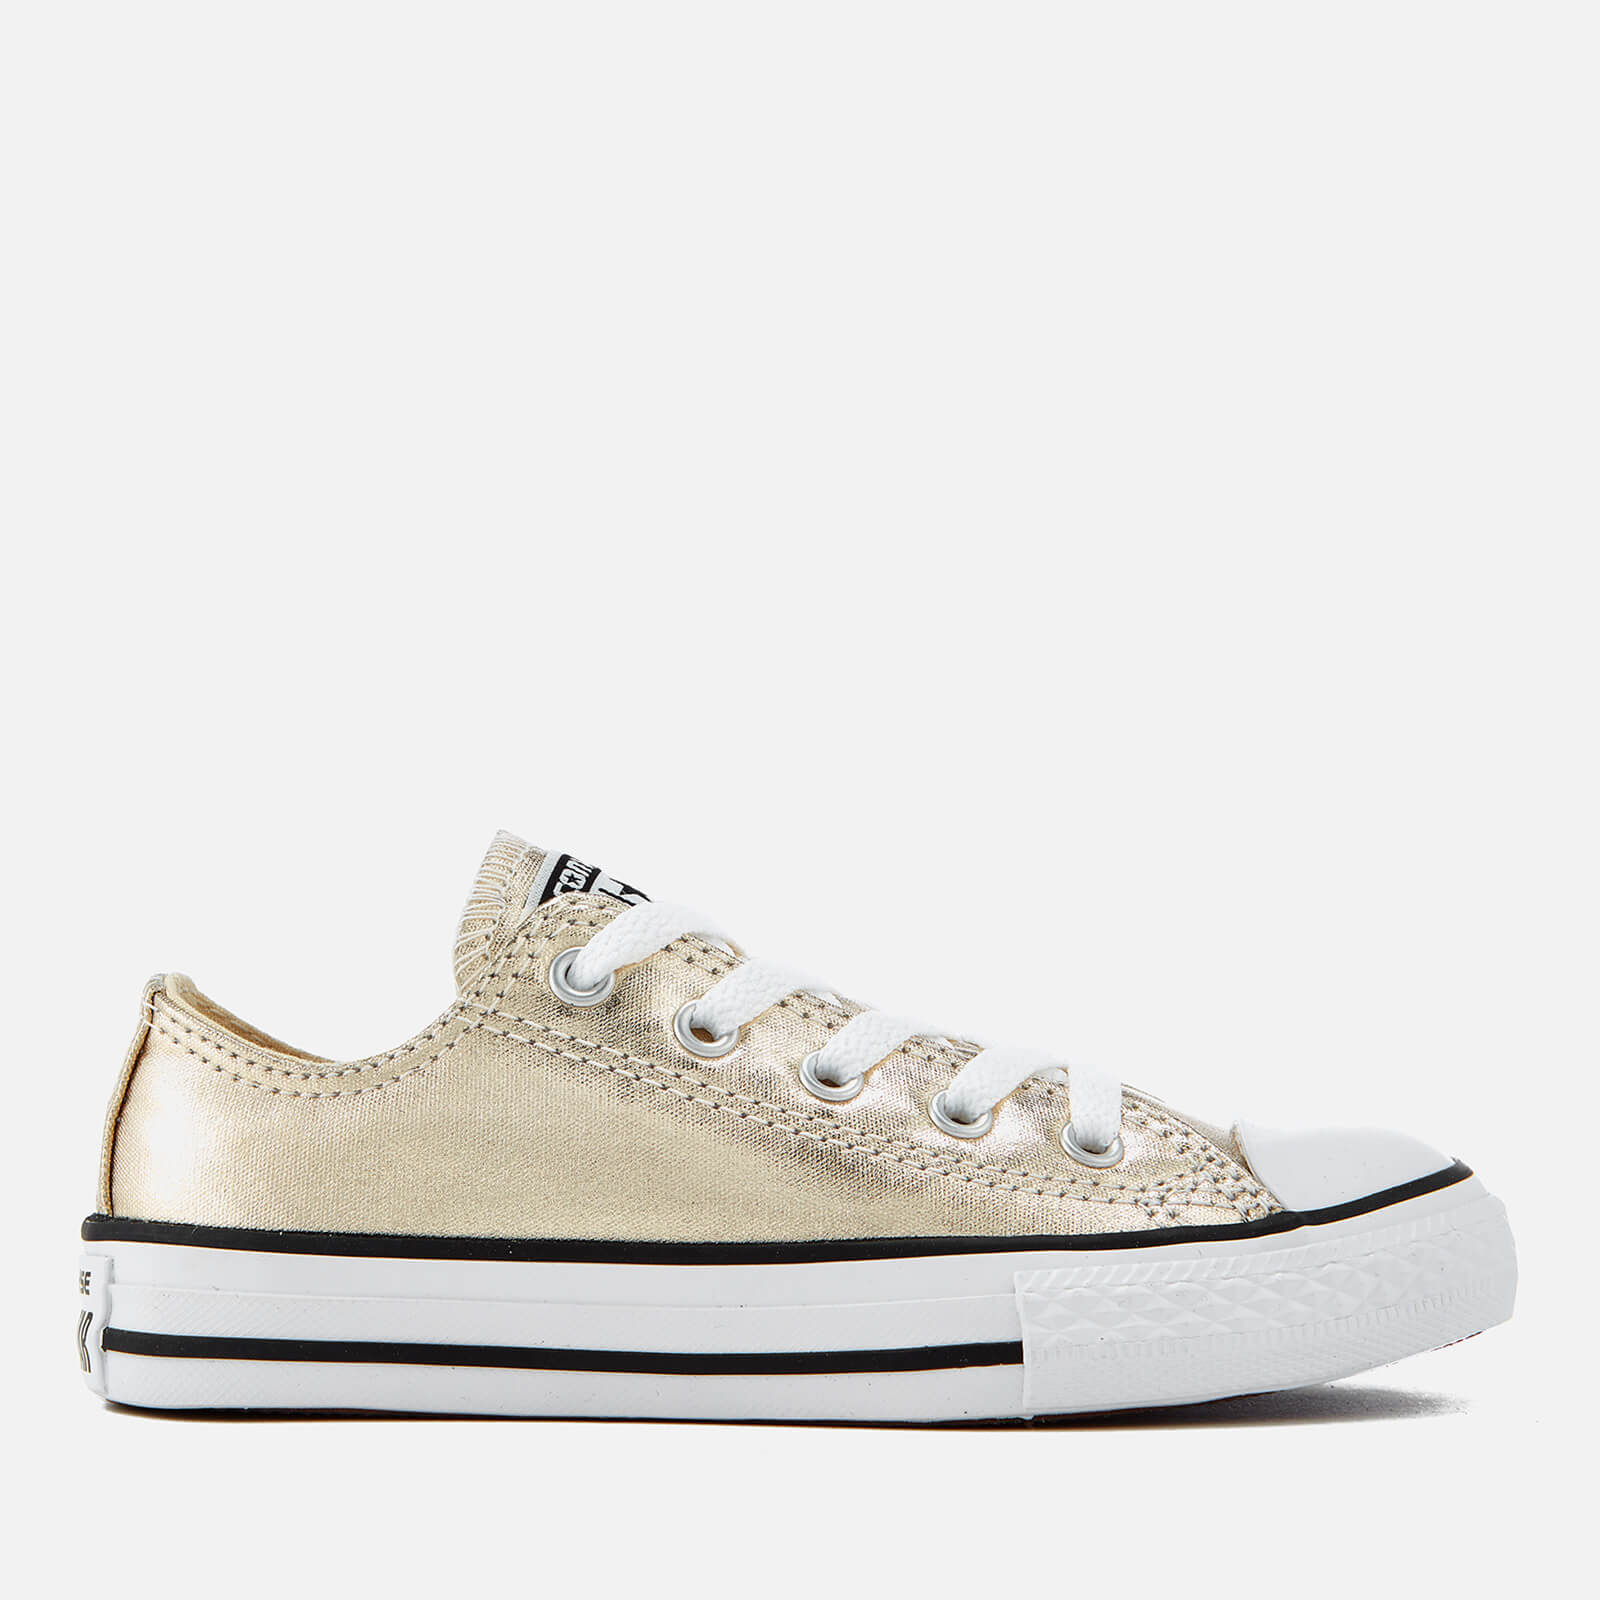 ed71c1aeadfa6e Converse Kids  Chuck Taylor All Star Ox Trainers - Light Gold White Black  Junior Clothing